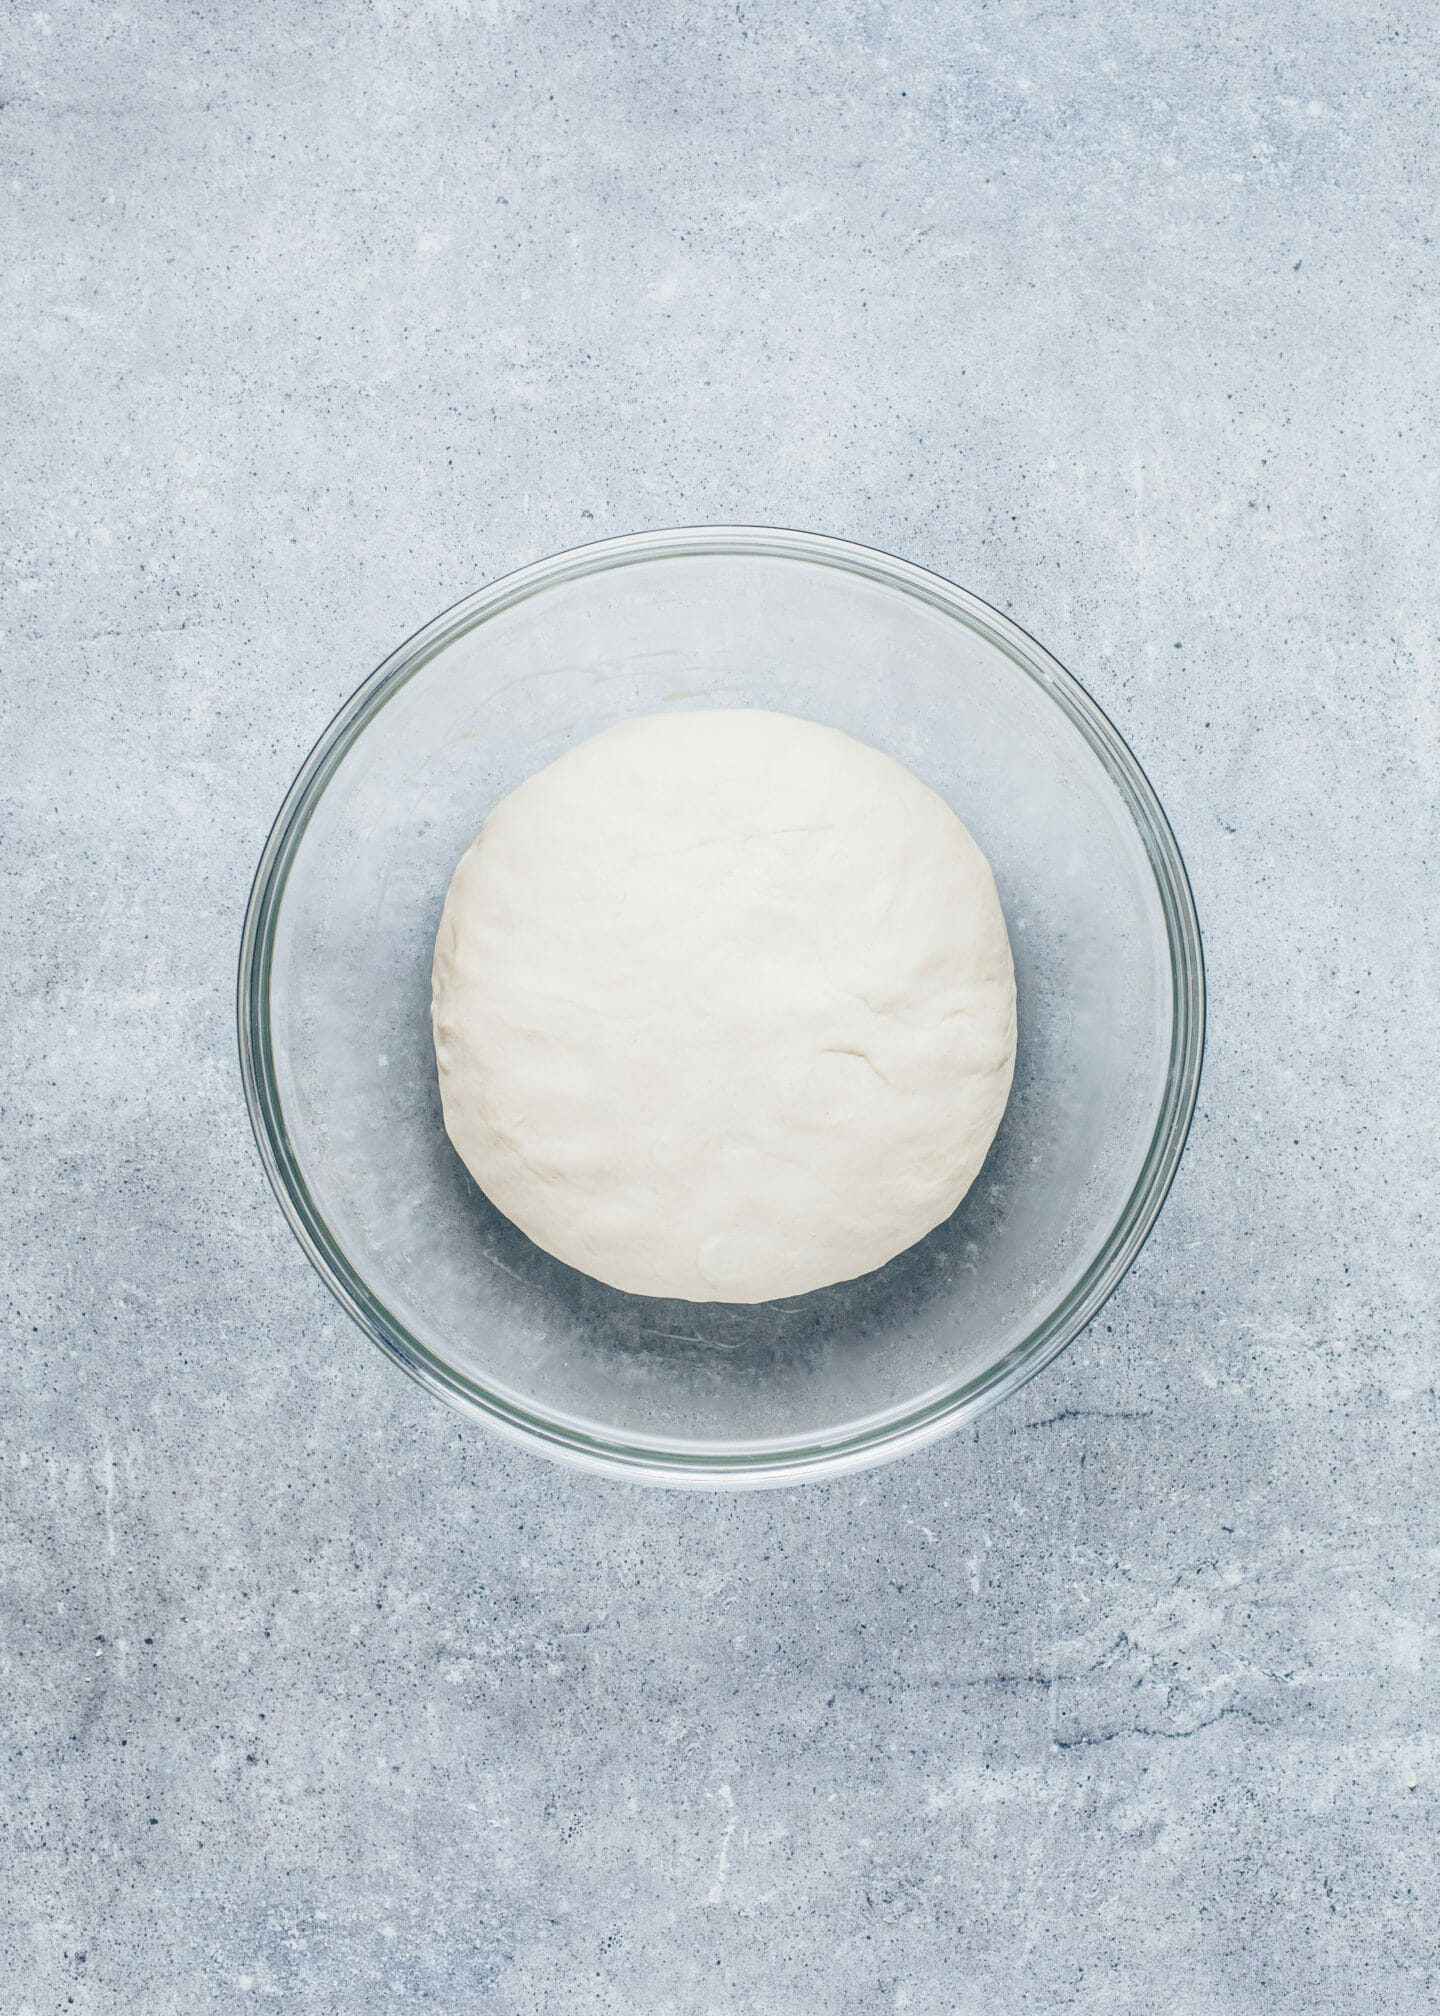 yeast dough in a bowl to make focaccia bread